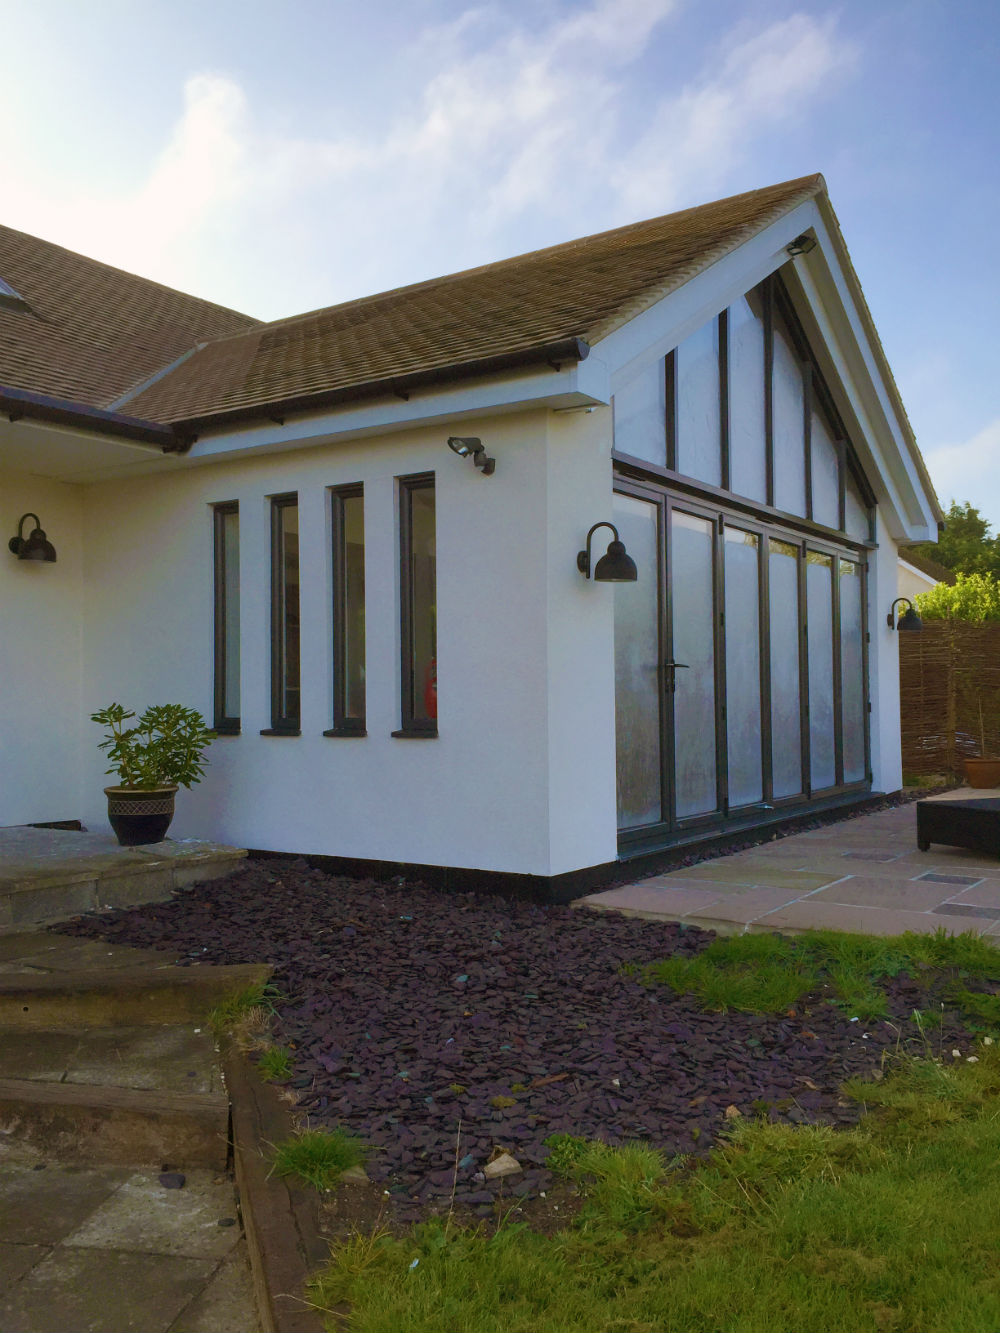 extension builders oxford - regal homemaker - extensions oxford, oxfordshire